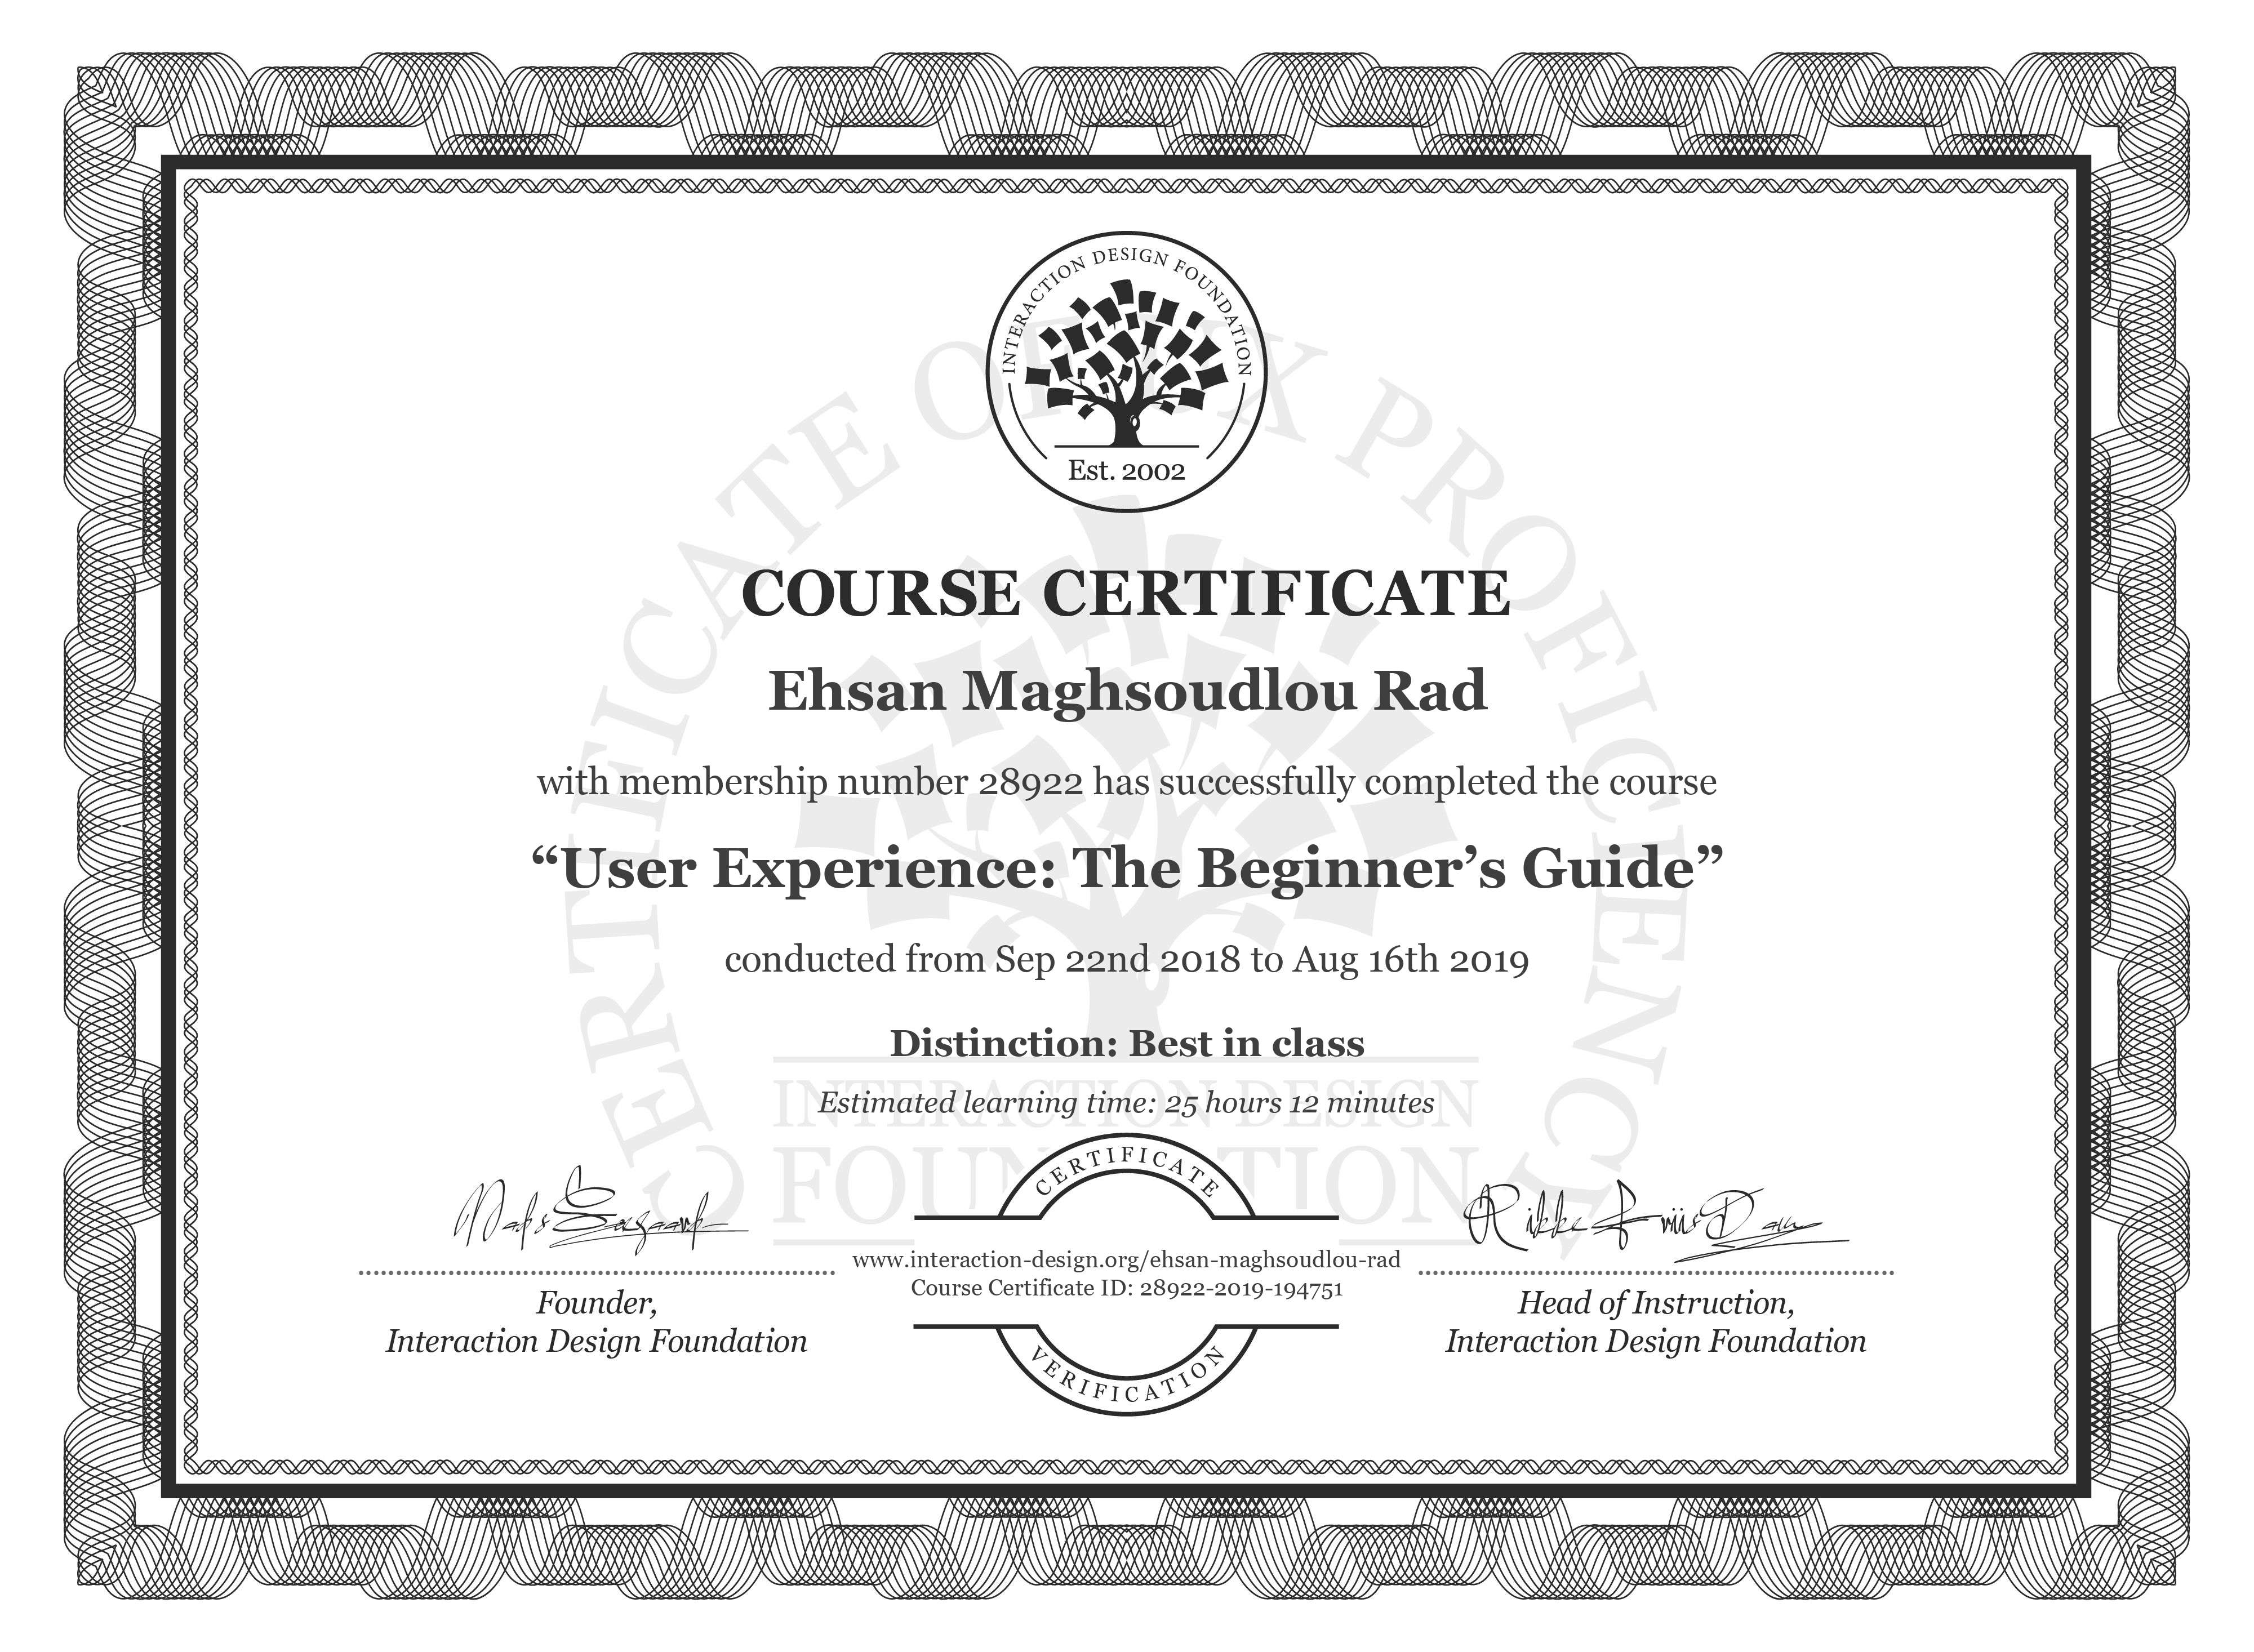 Ehsan Maghsoudlou Rad's Course Certificate: Become a UX Designer from Scratch